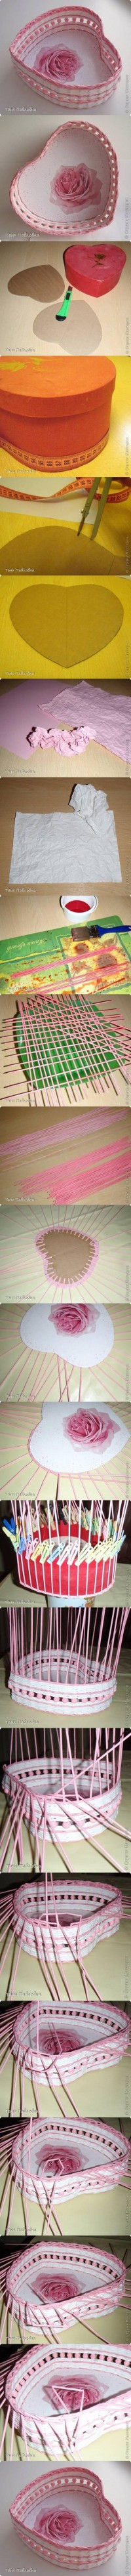 DIY Heart Paper Basket DIY Projects | UsefulDIY.com